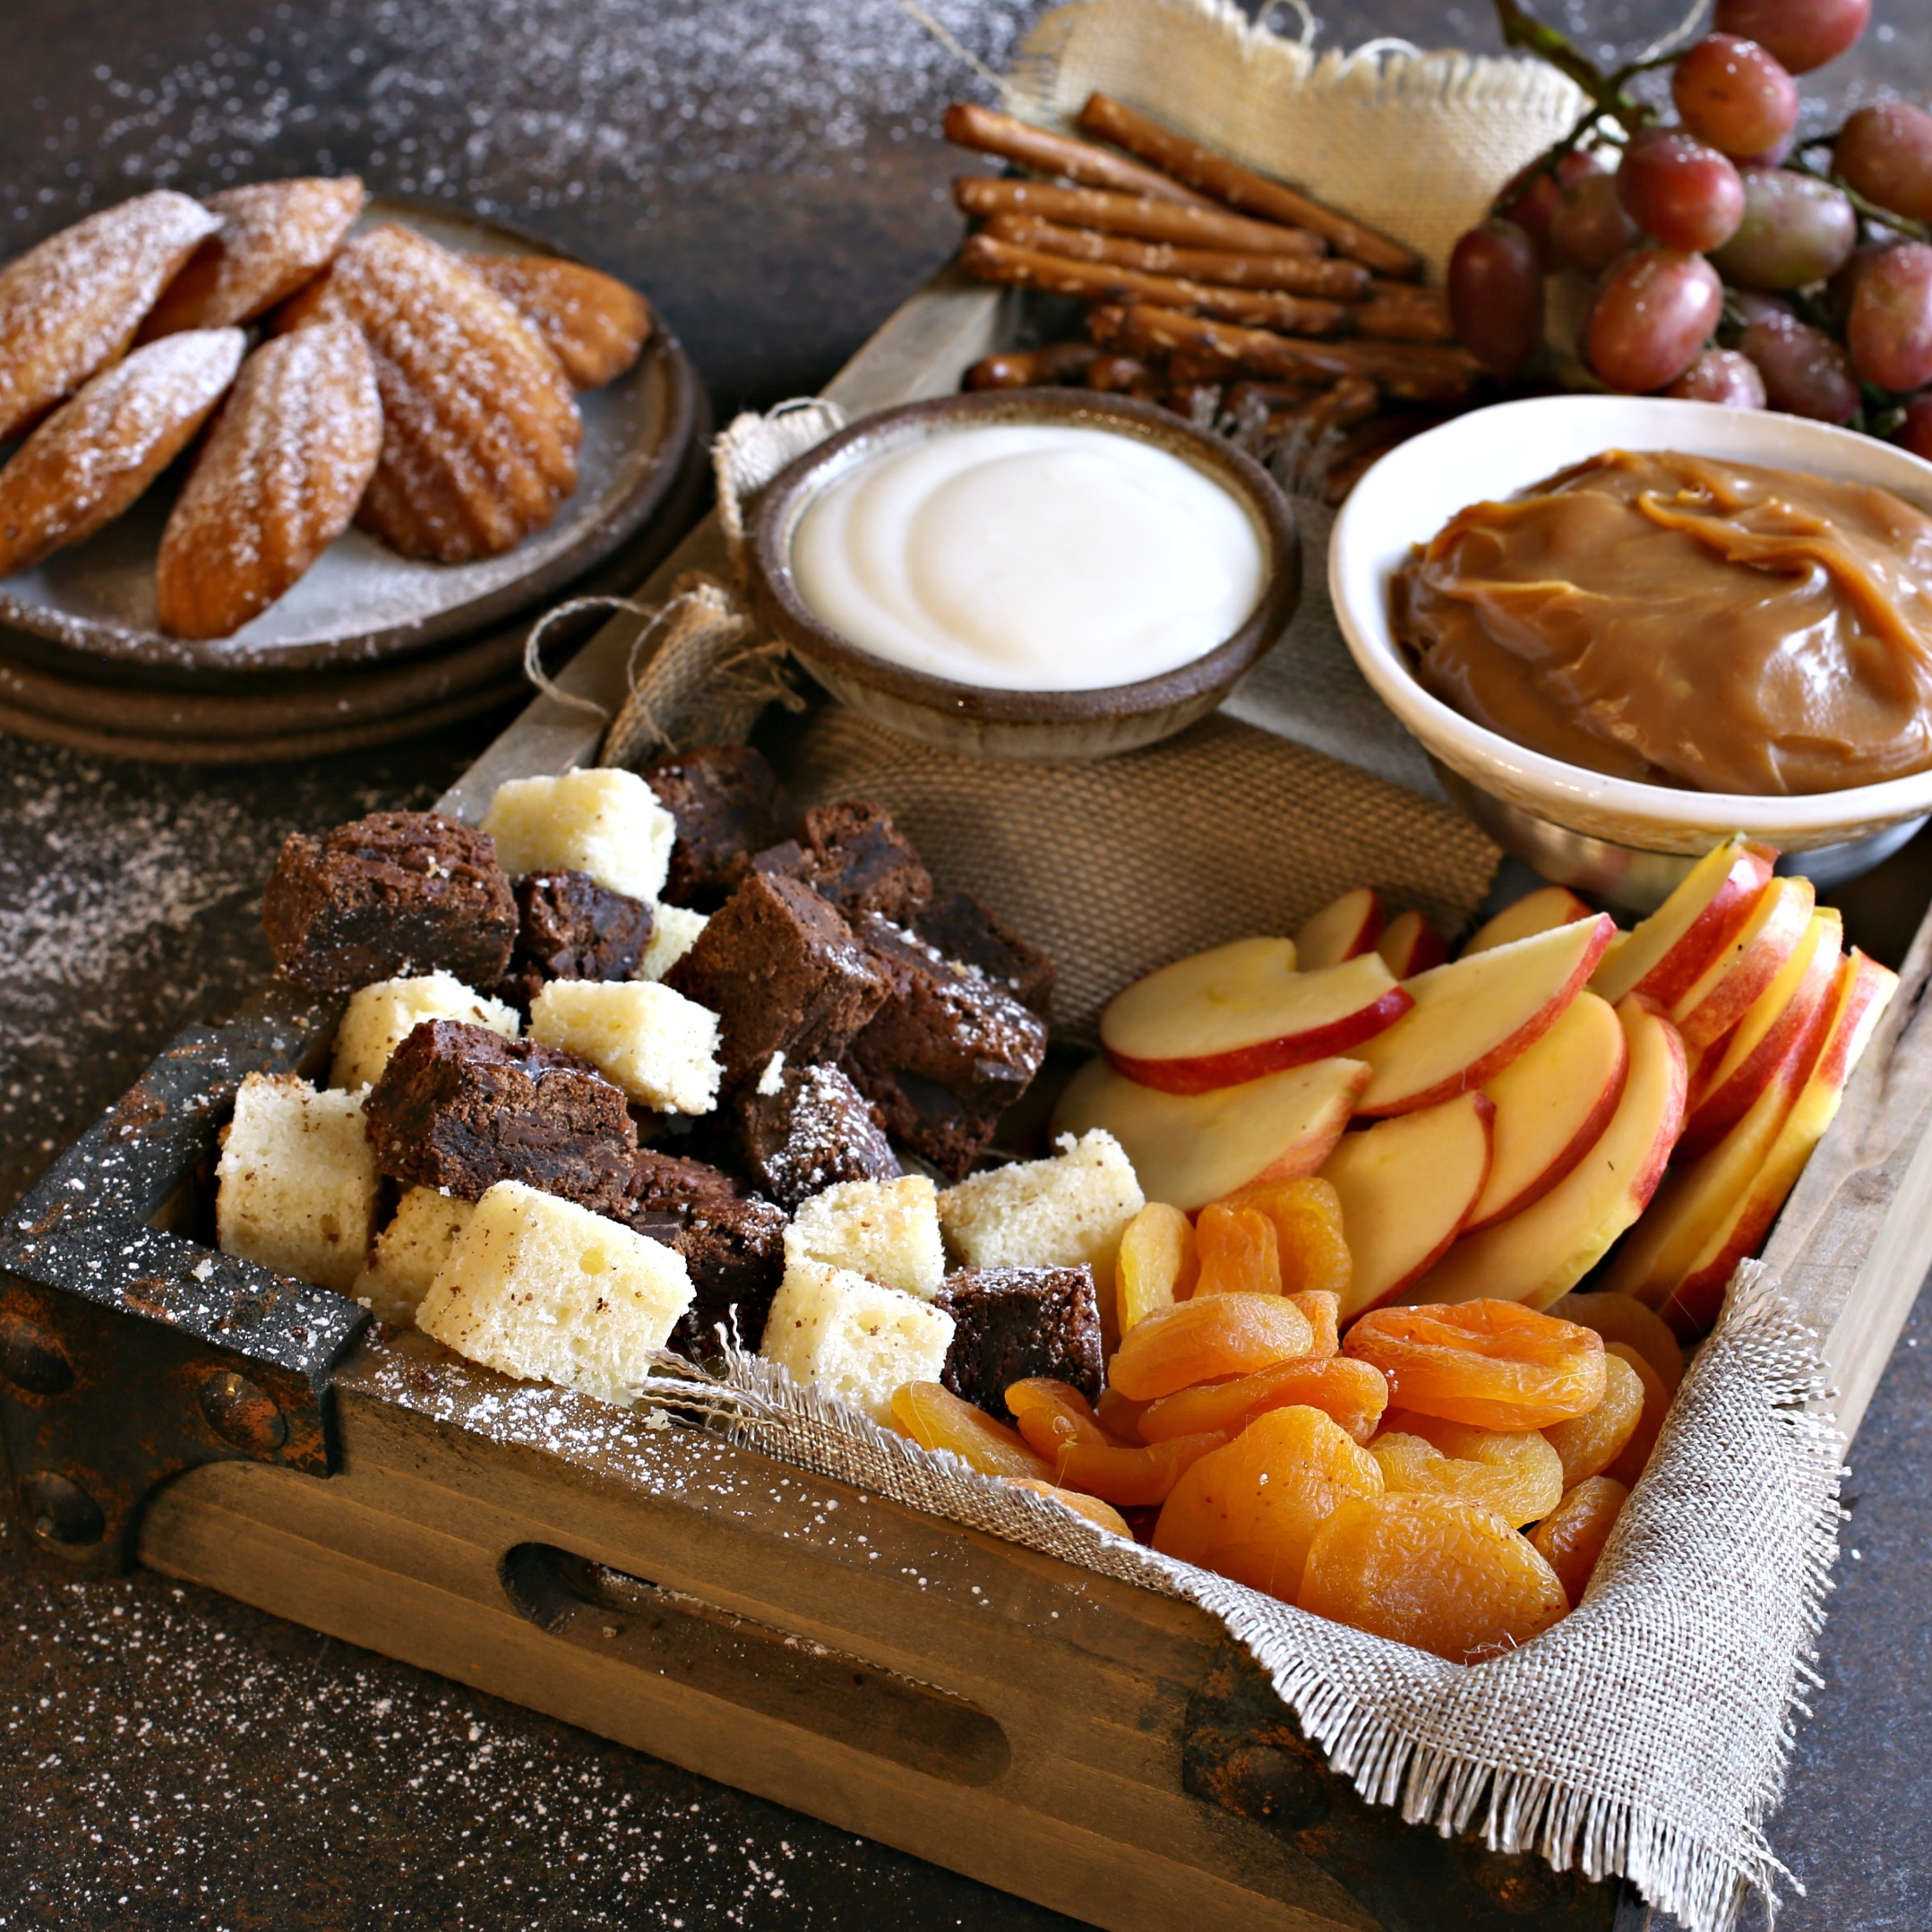 Dessert Treat Board Square.jpg